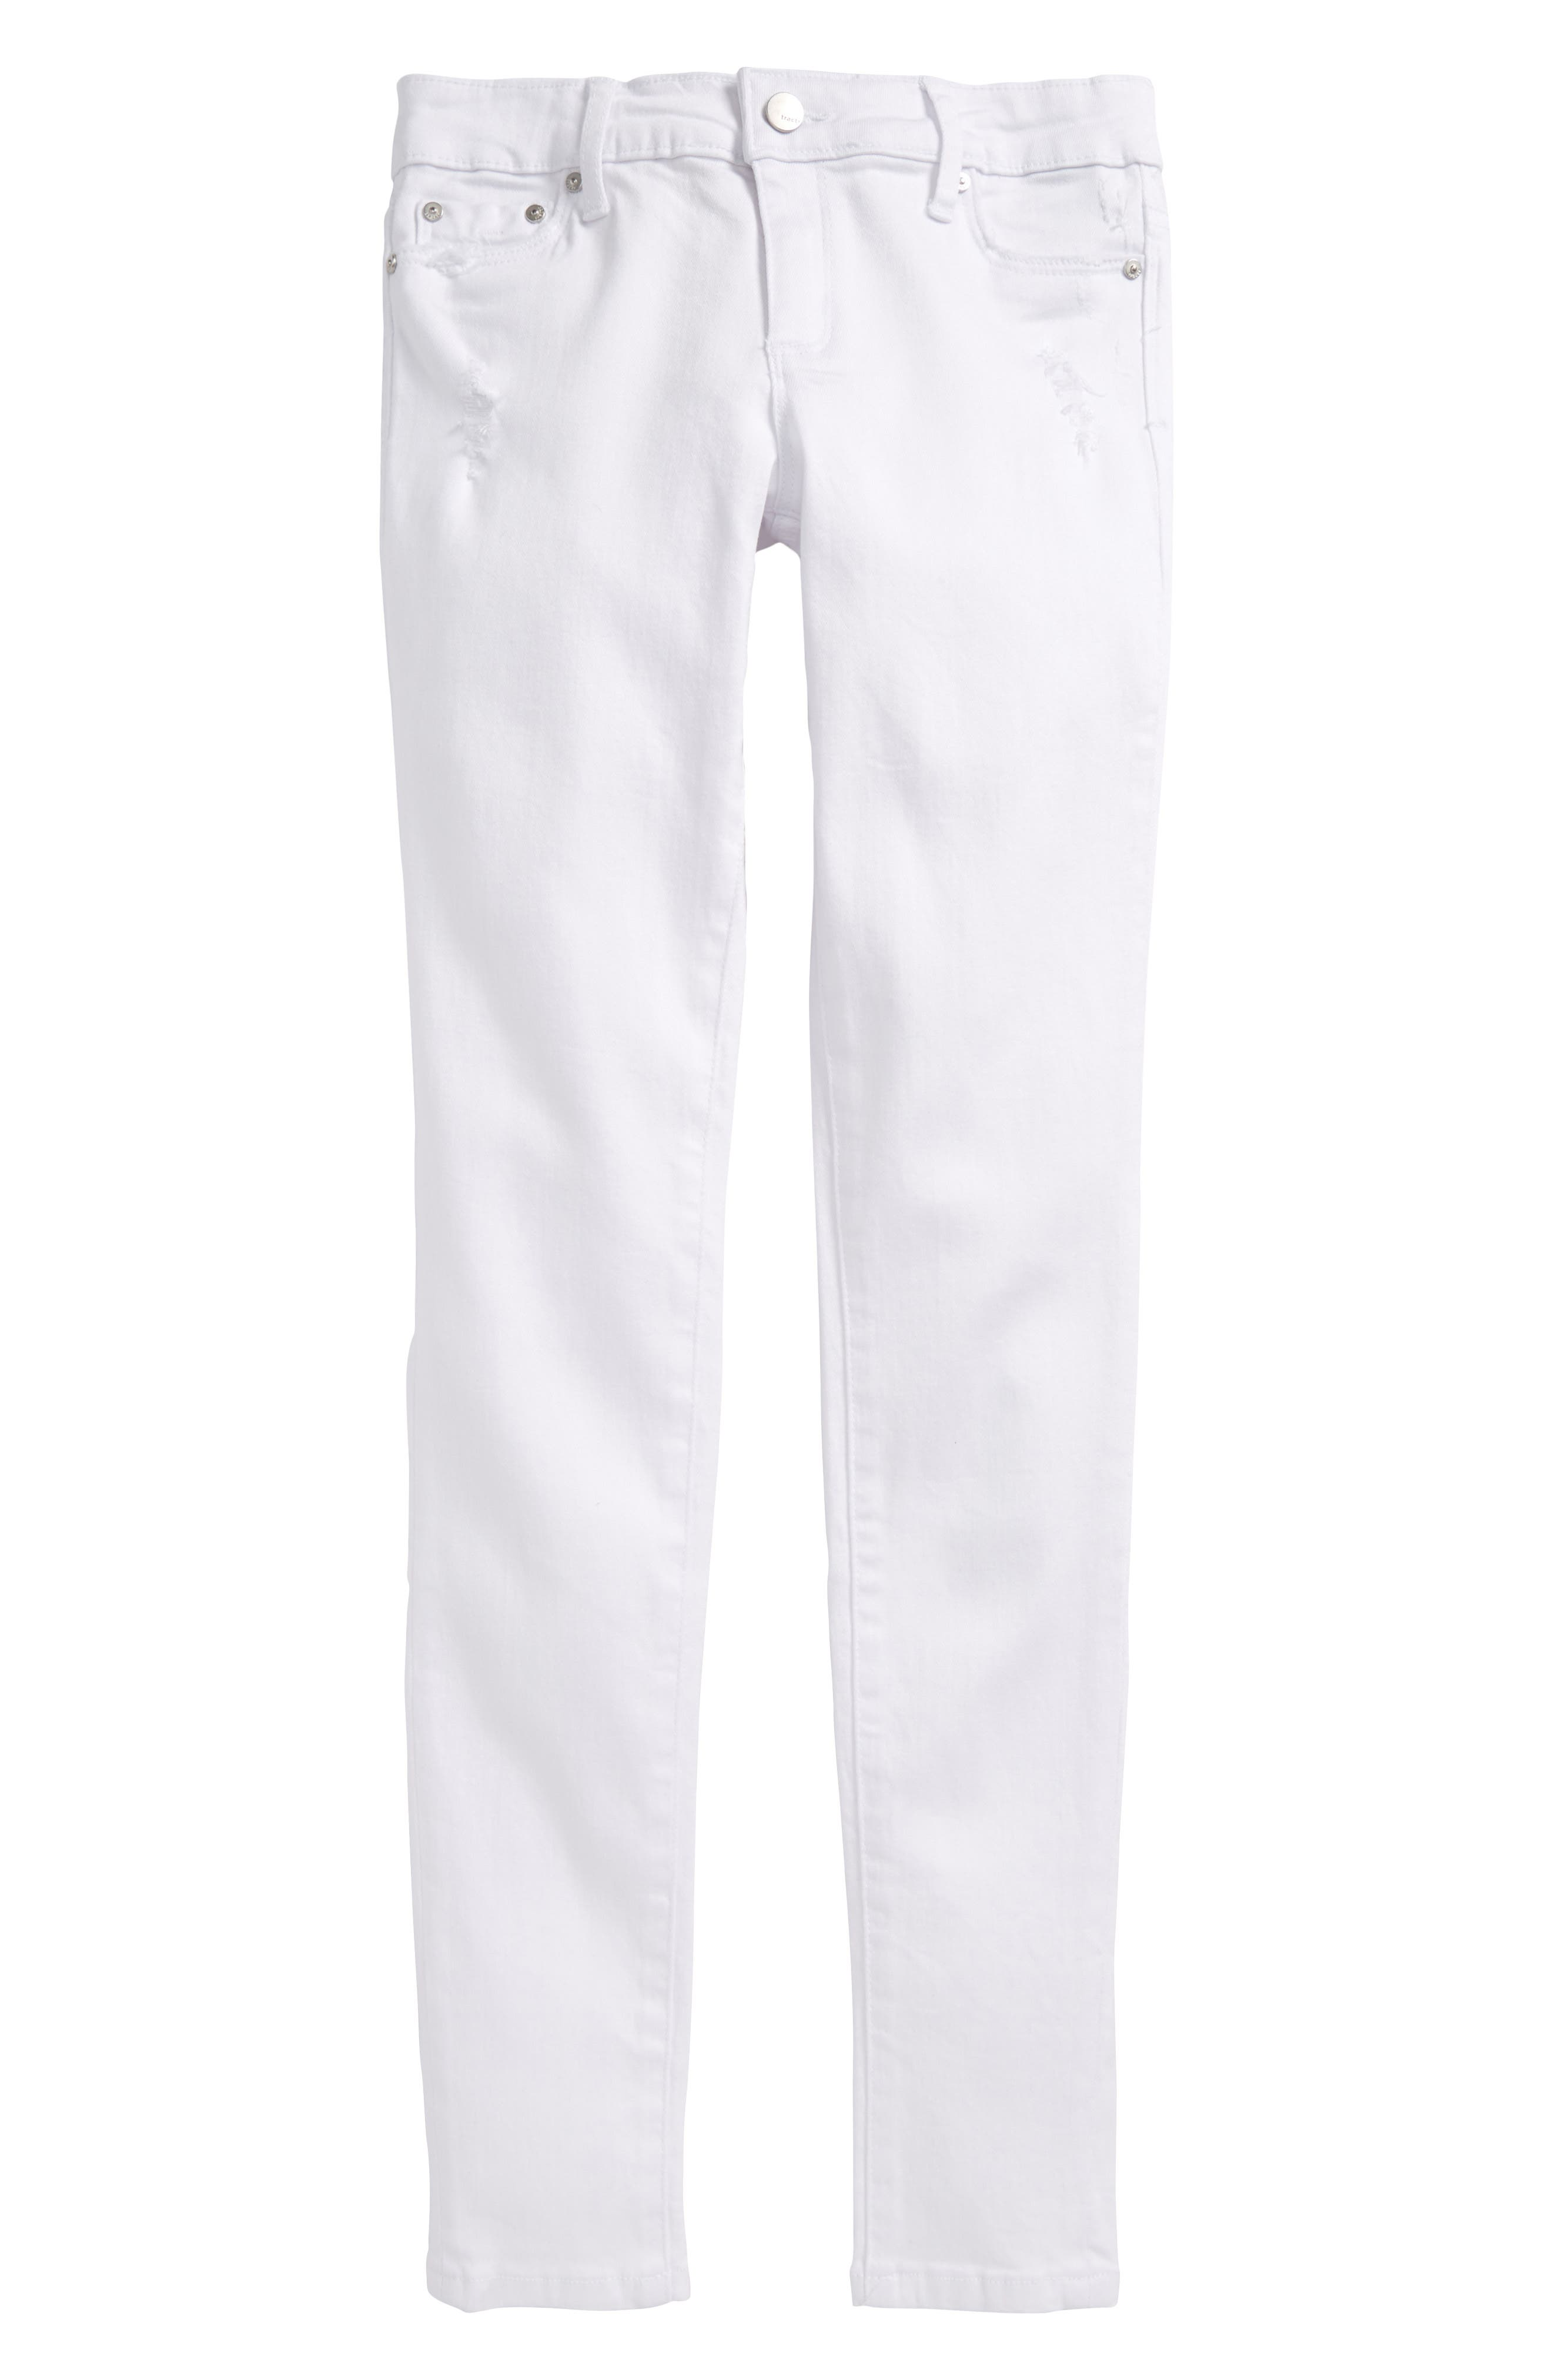 Deconstructed Skinny Jeans,                         Main,                         color, White